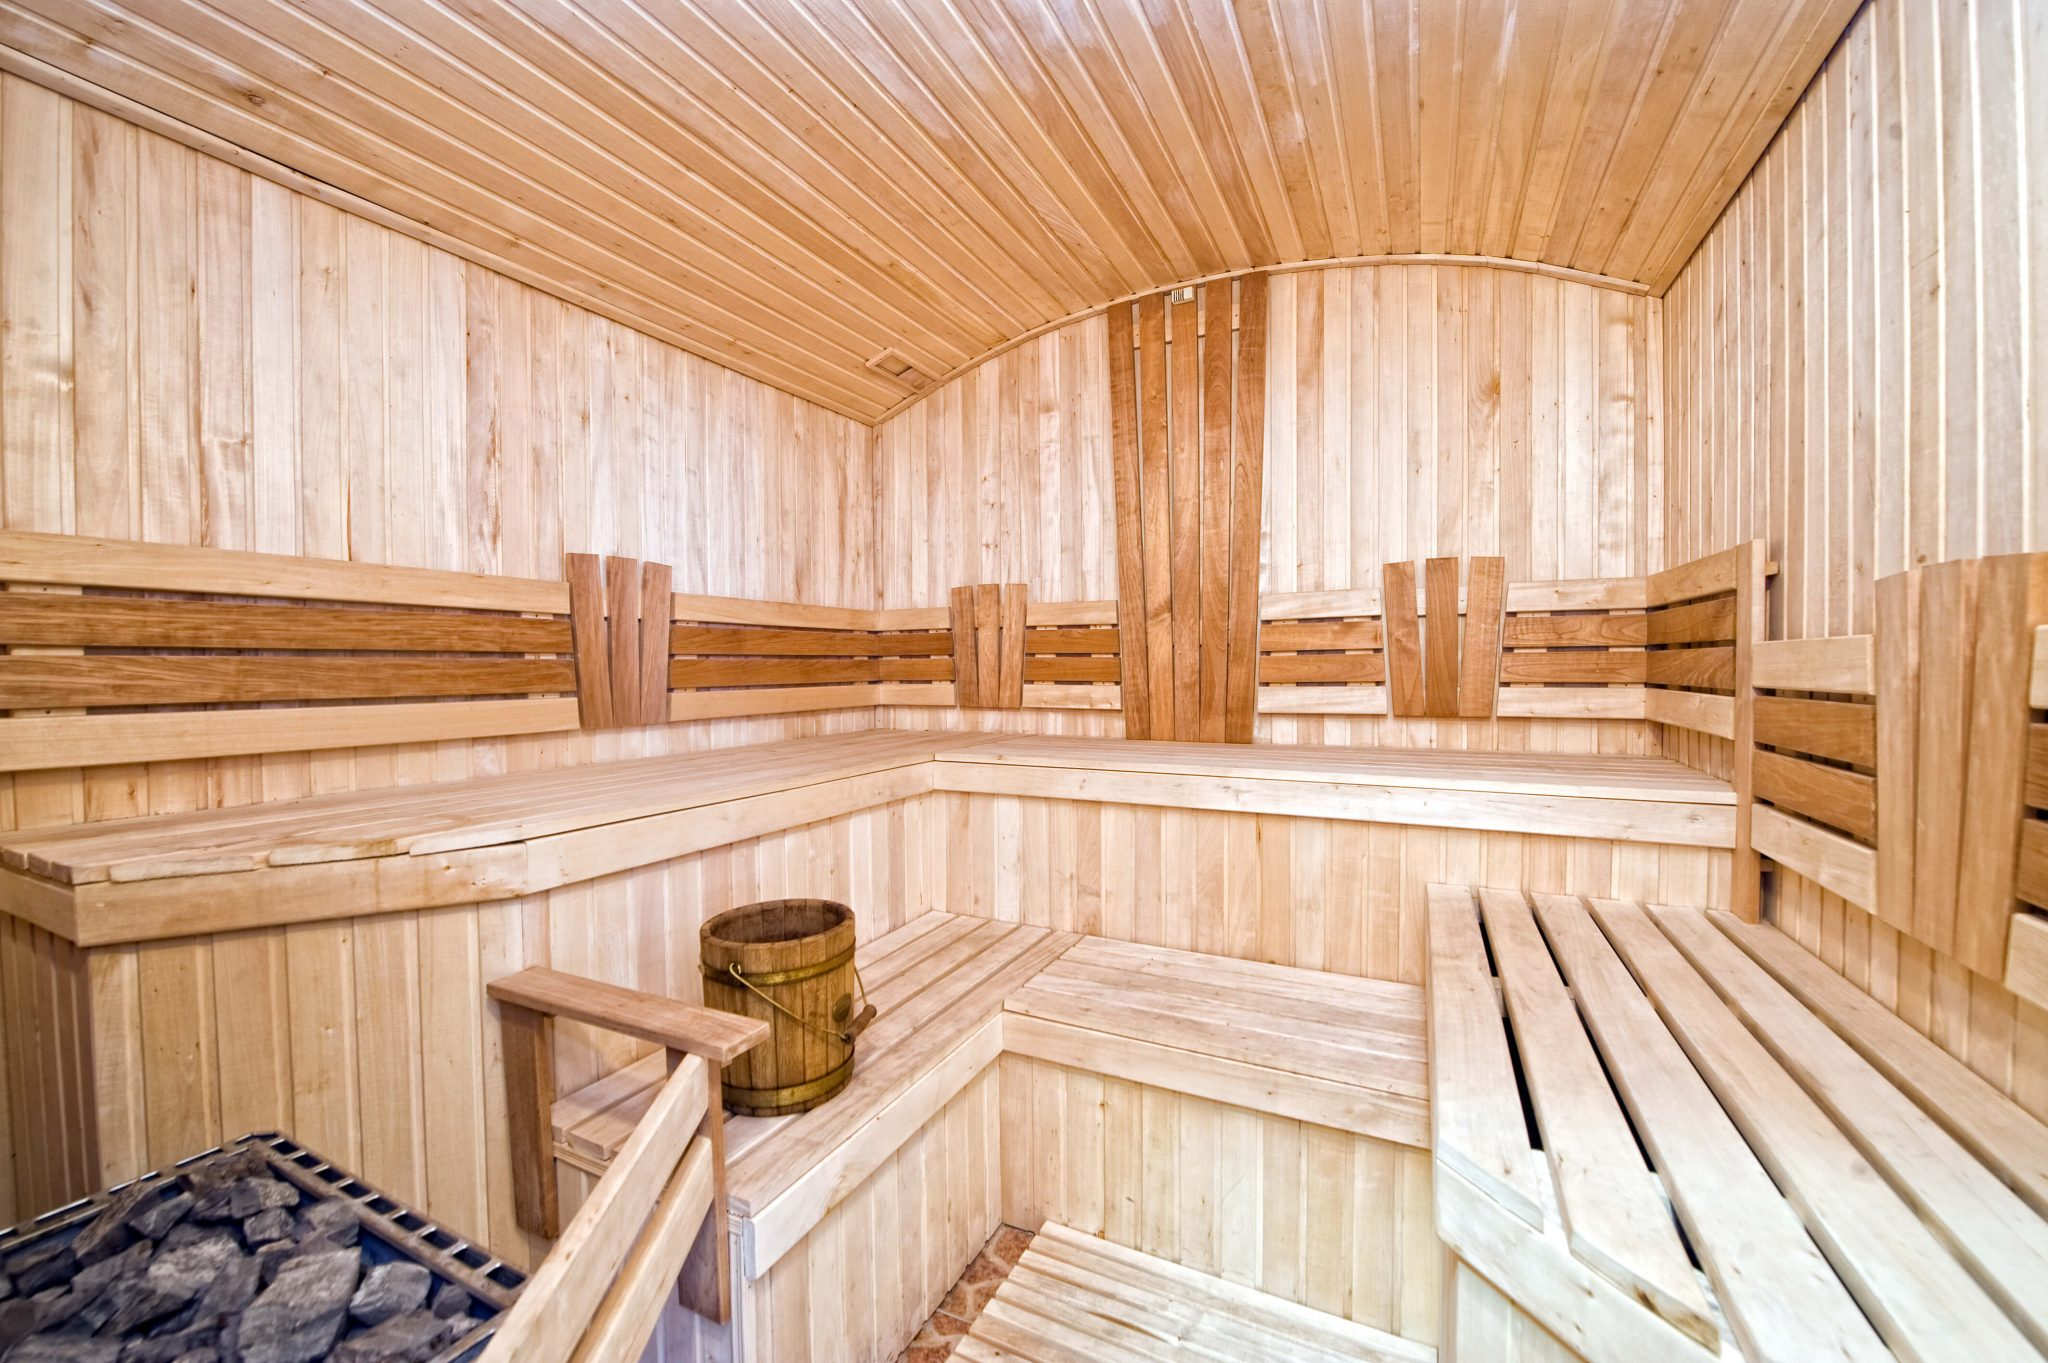 Staggered tiered sauna interior with arched roof